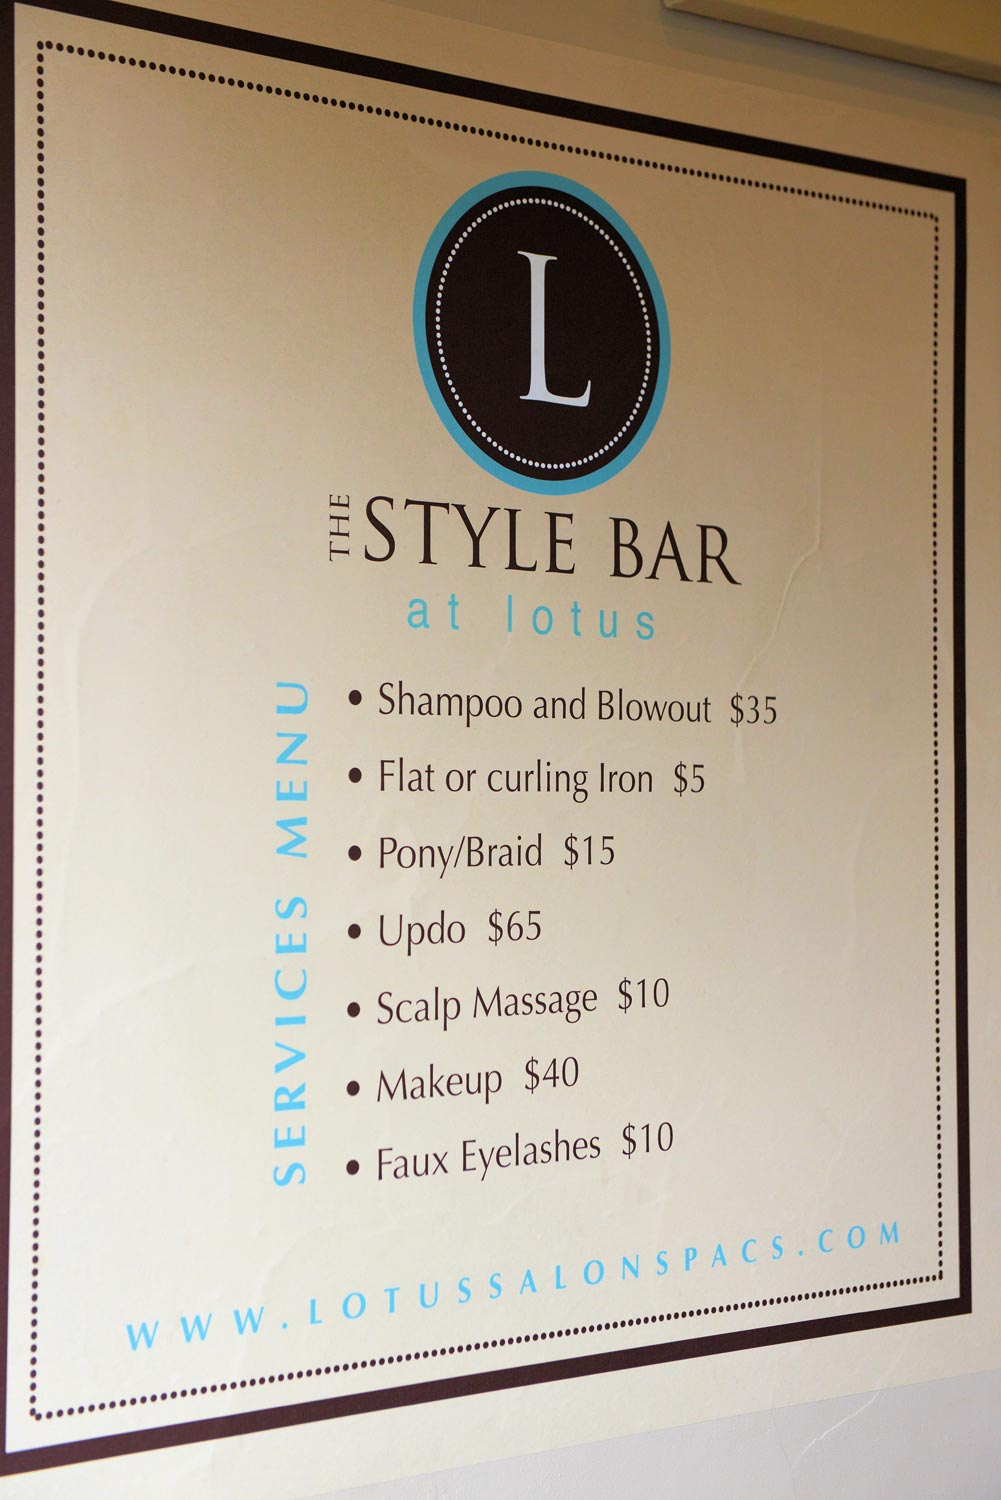 The Style bar provides last minute touches like updo's, makeup, and faux eyelashes quickly and beautifully.